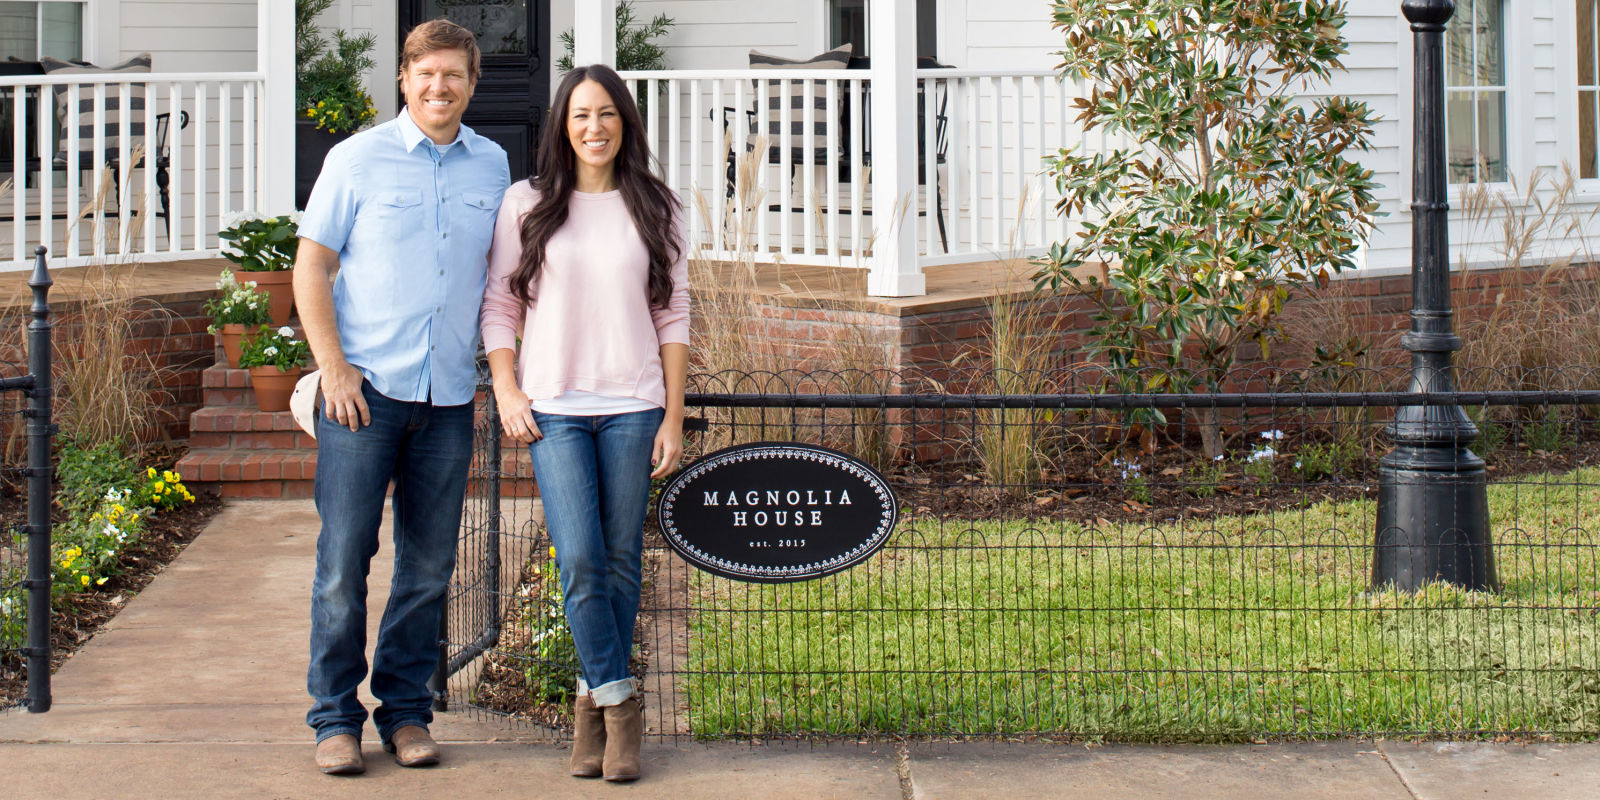 Waco Texas Real Estate Chip And Joanna Gaines Chip And Joanna Gaines Magnolia House B Amp B Tour Fixer